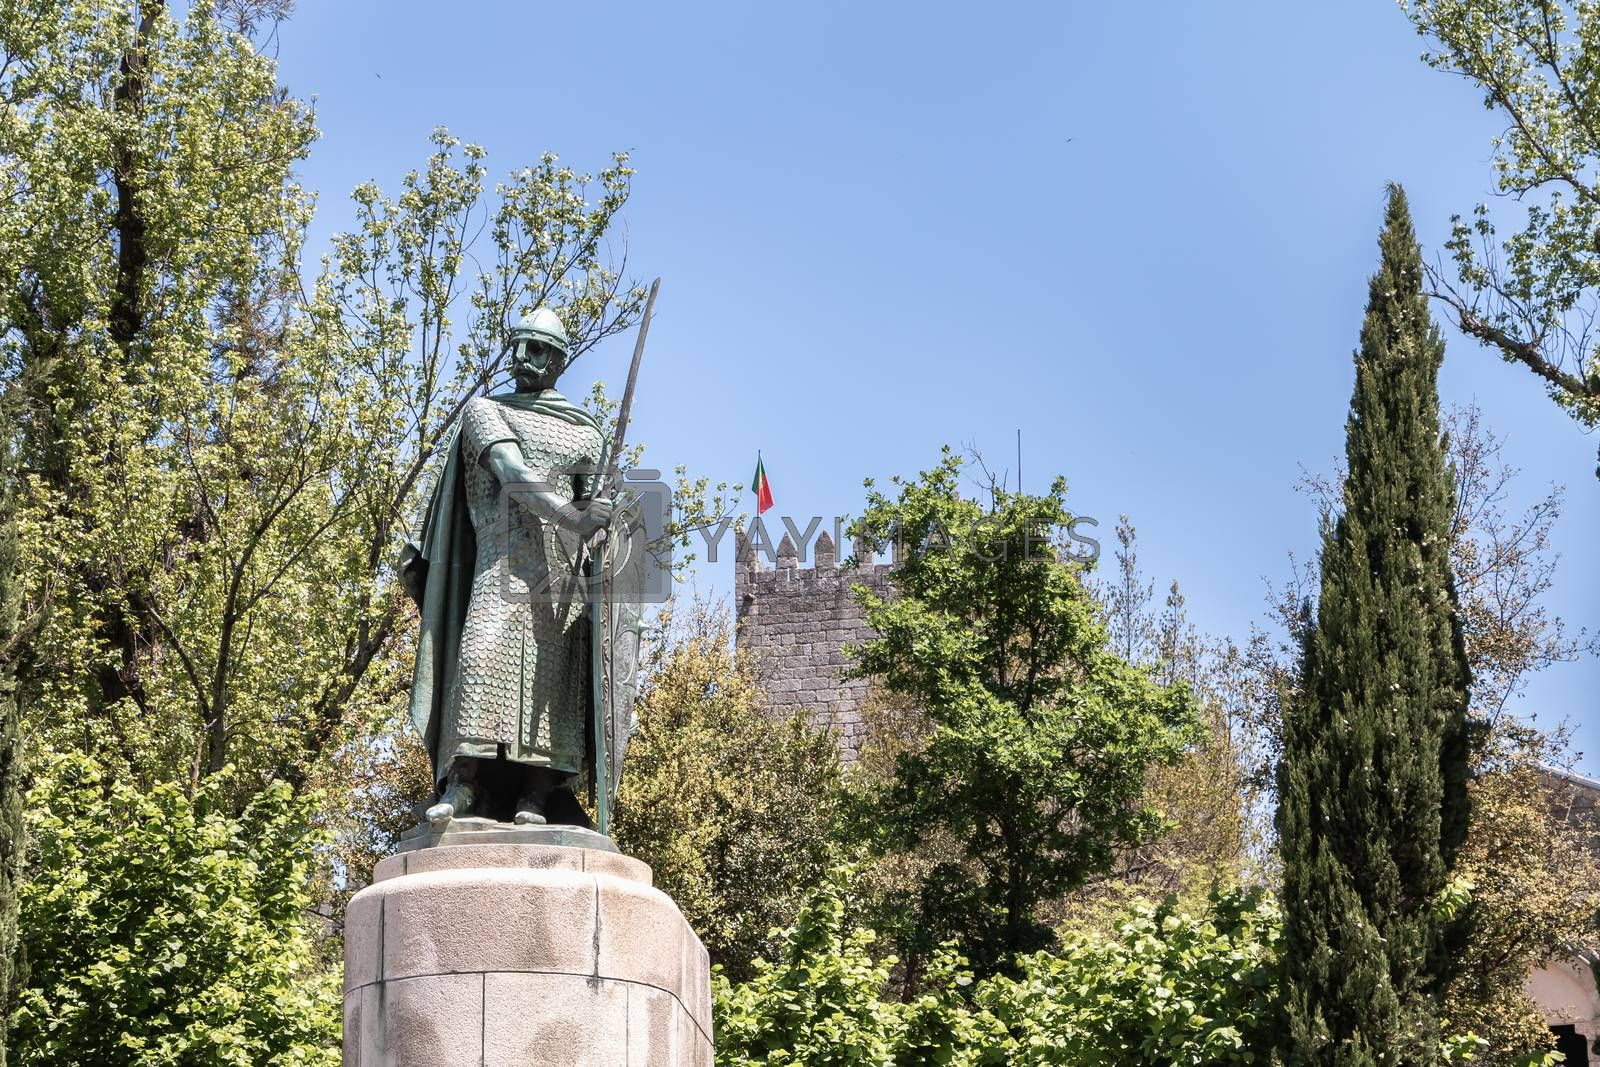 Guimaraes, Portugal - May 10, 2018: statue of the first king of Portugal, D. Afonso Henriques by the sculptor Antonio Soares dos Reis in front of the castle of Guimaraes that tourists are visiting on a spring day